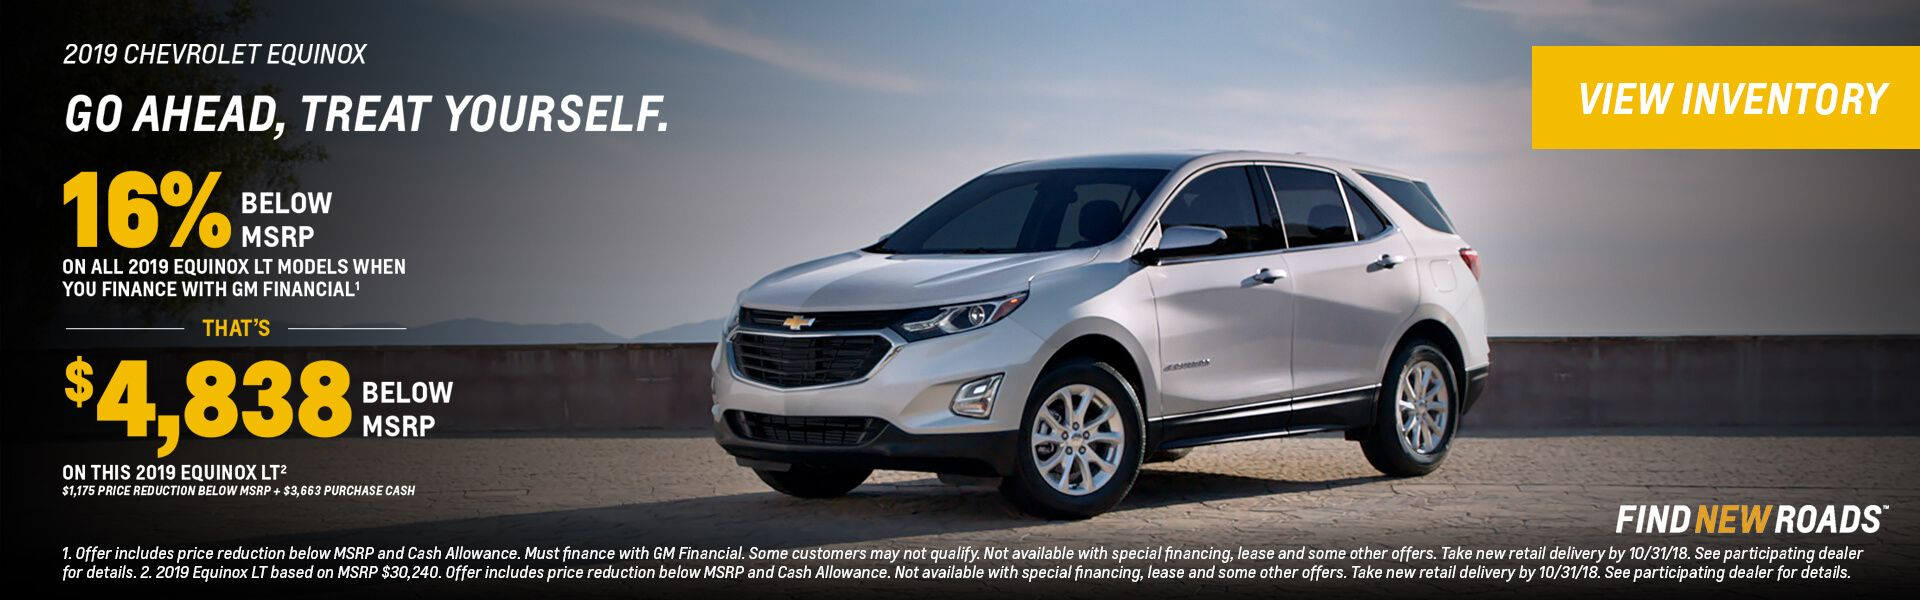 Chevy Suv Car Dealer With Special Offer More Chevrolet Car Deal With Offer At Chevy Dealer In Houston Tx Chevy Dealerships Chevrolet Chevy